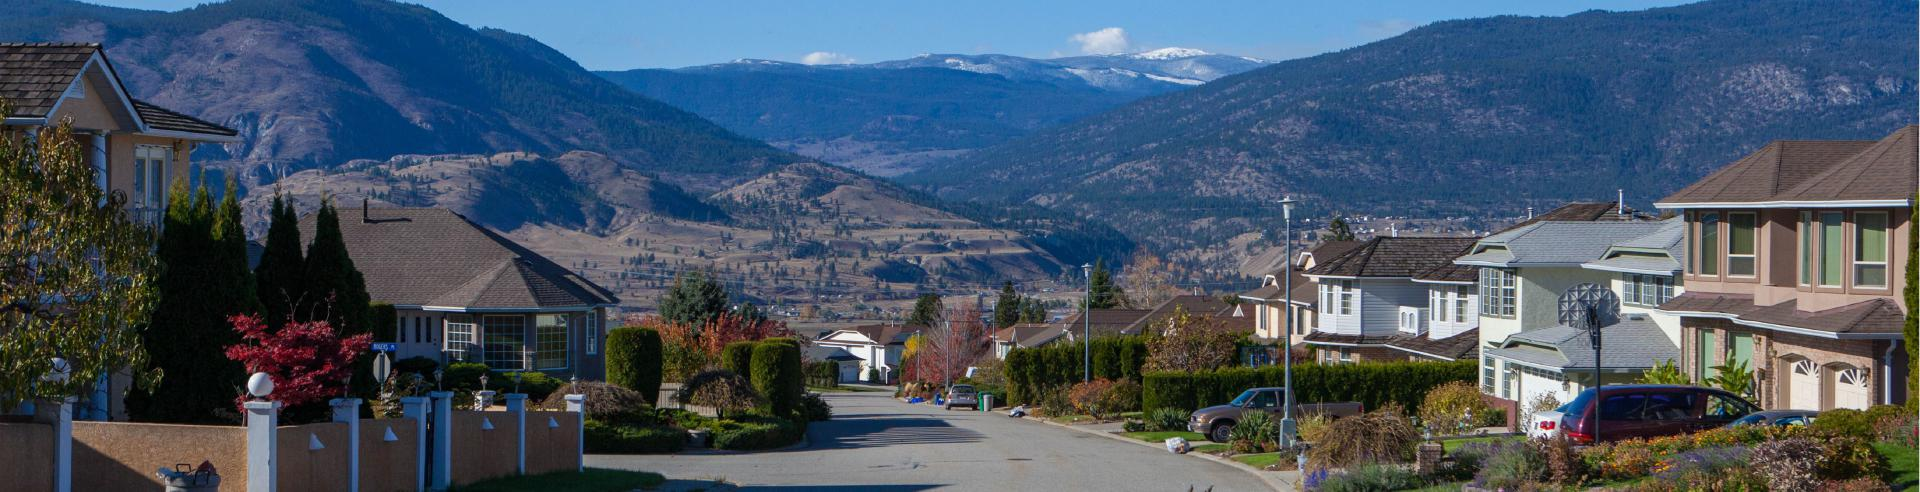 Penticton Neighbourhood